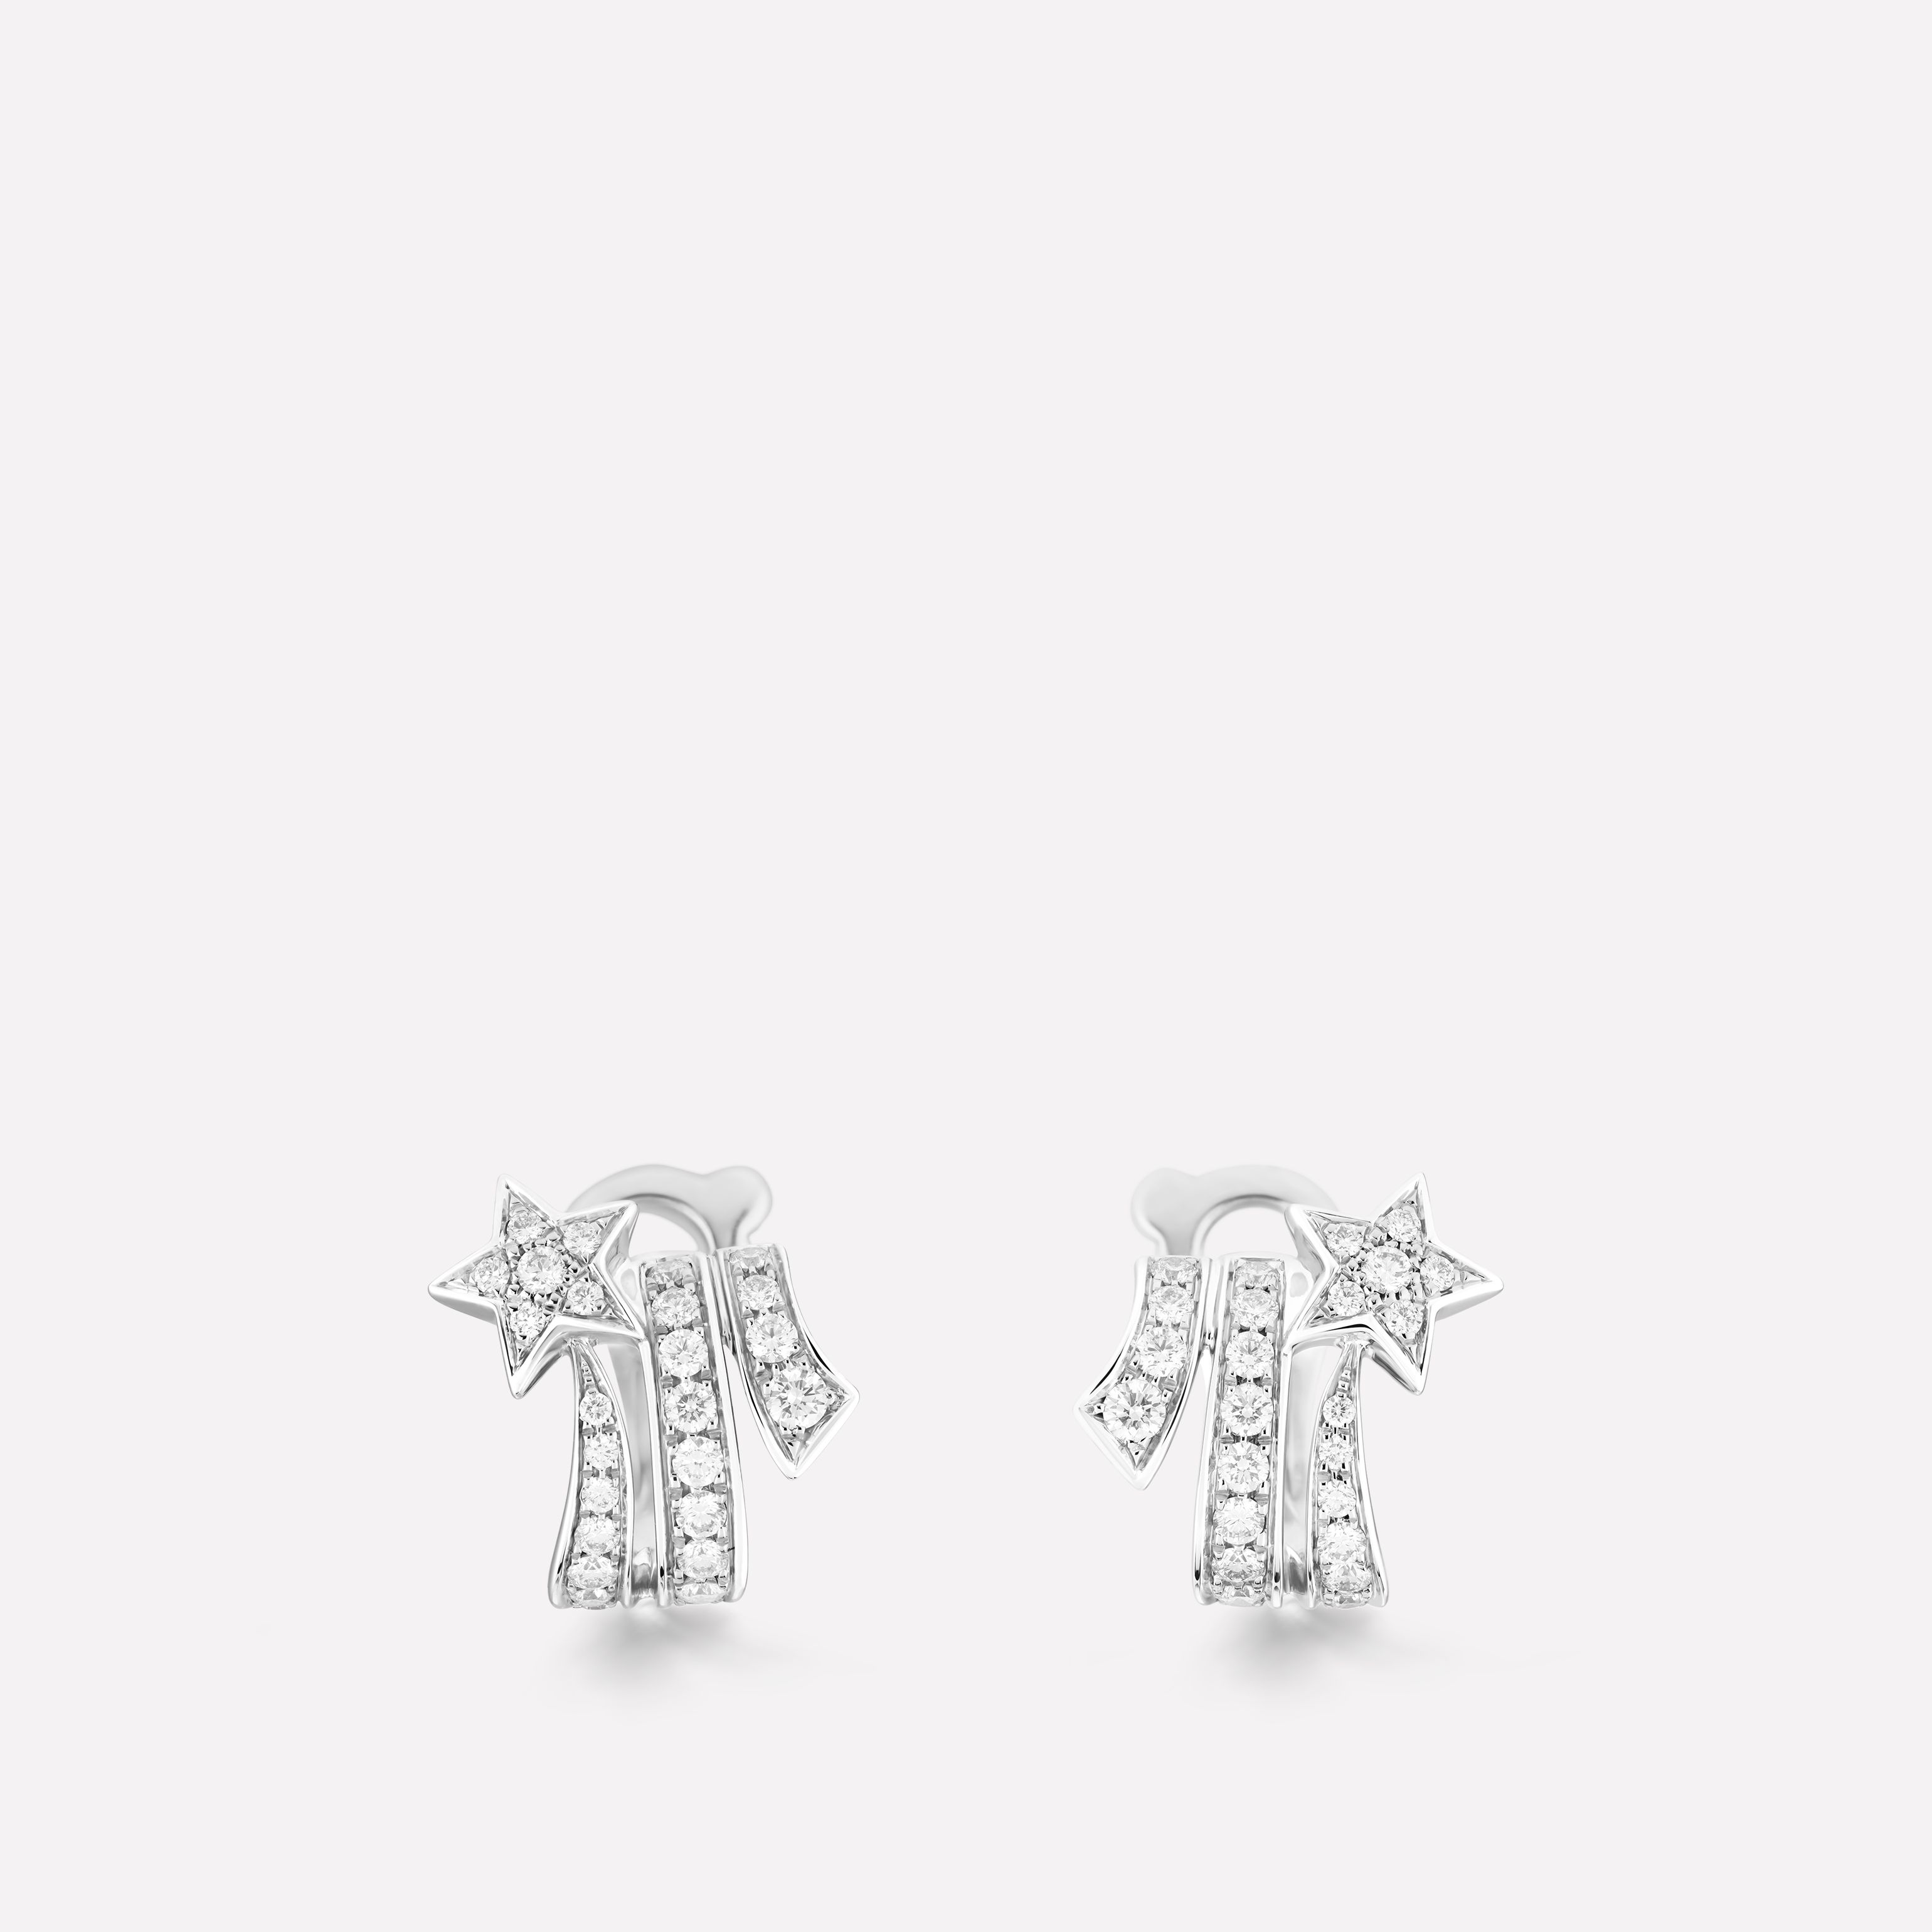 7941281a0 Comète earrings Shooting star earrings in 18K white gold and diamonds